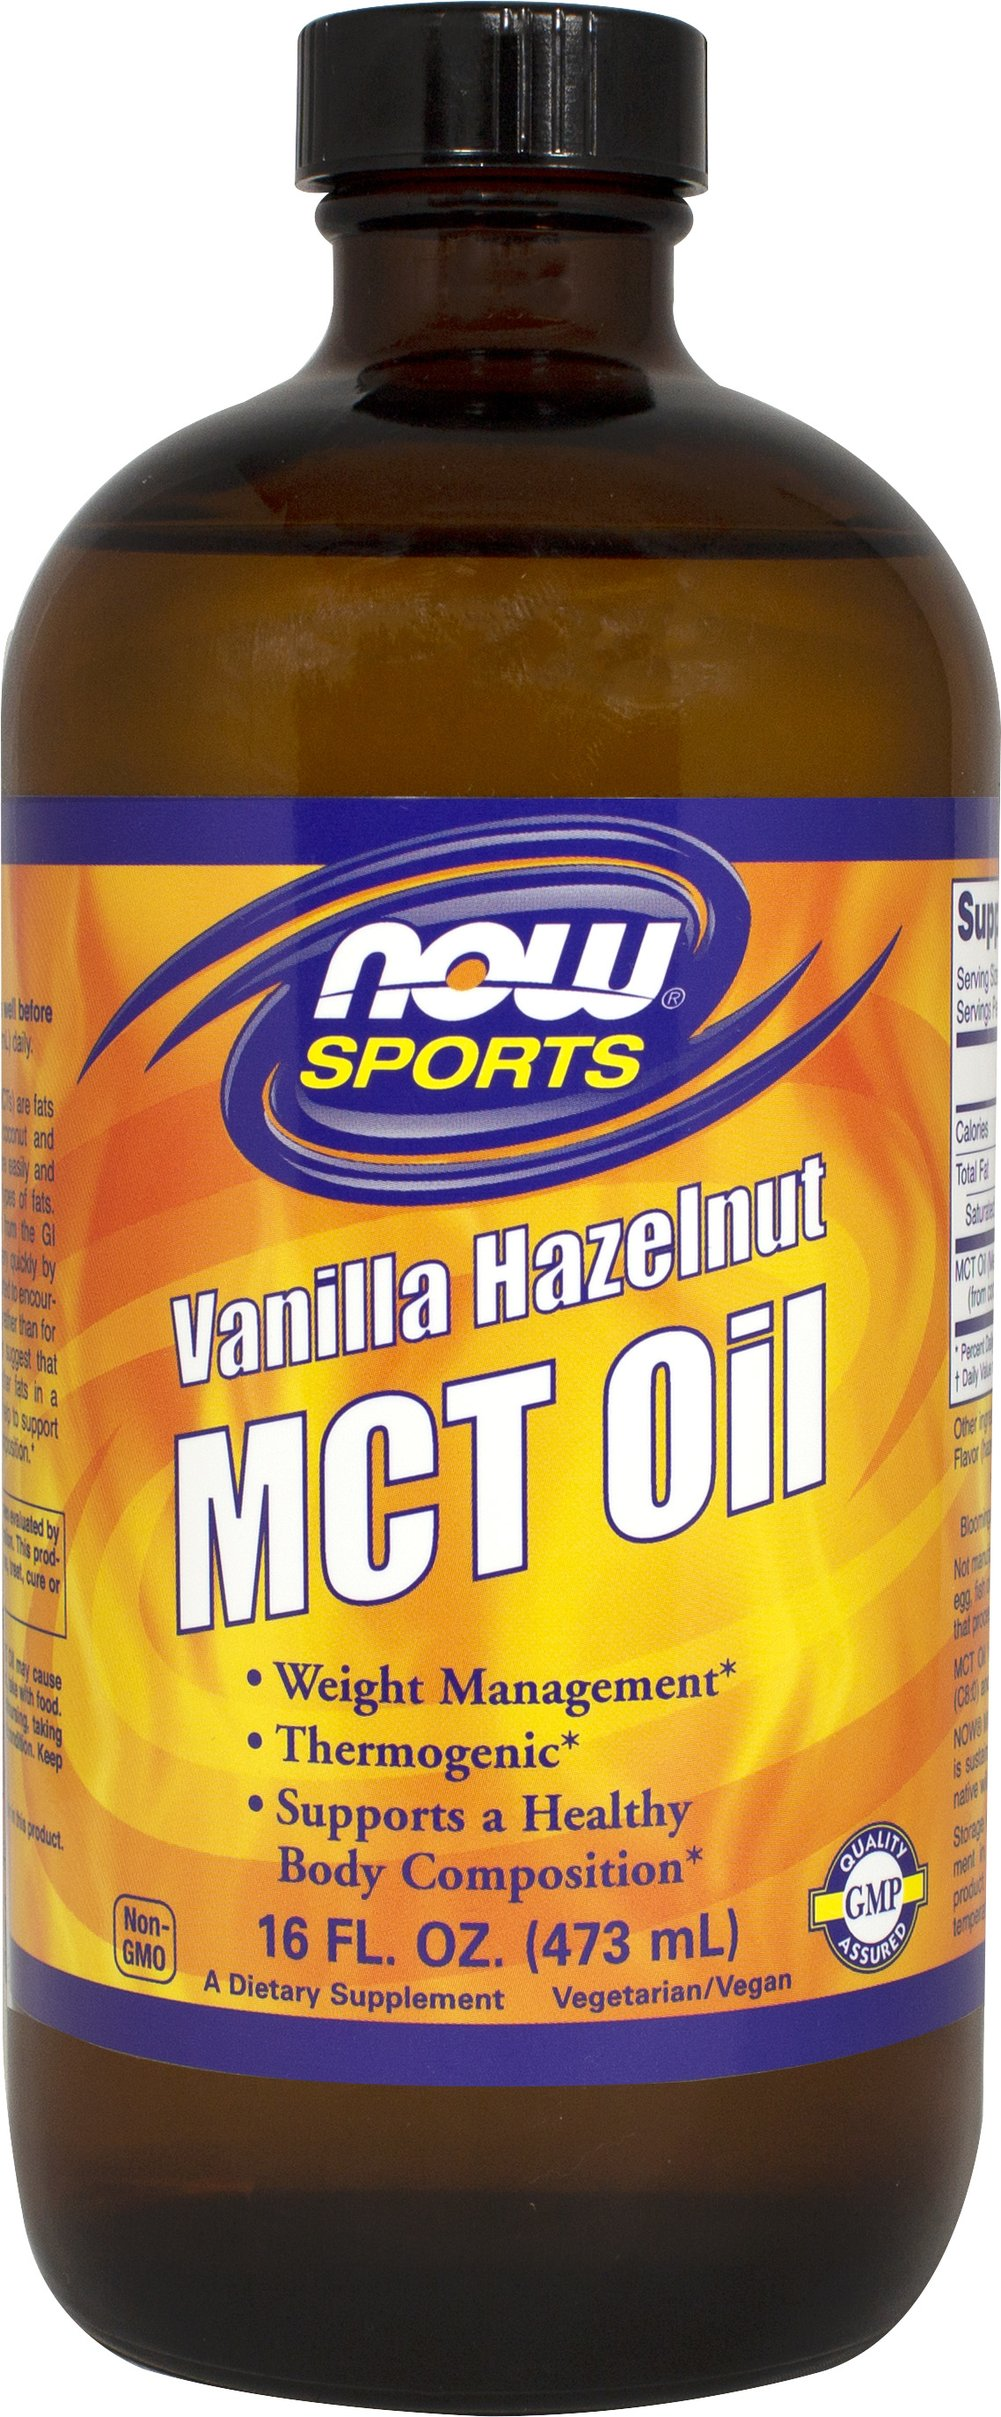 Vanilla Hazelnut MCT Oil Thumbnail Alternate Bottle View